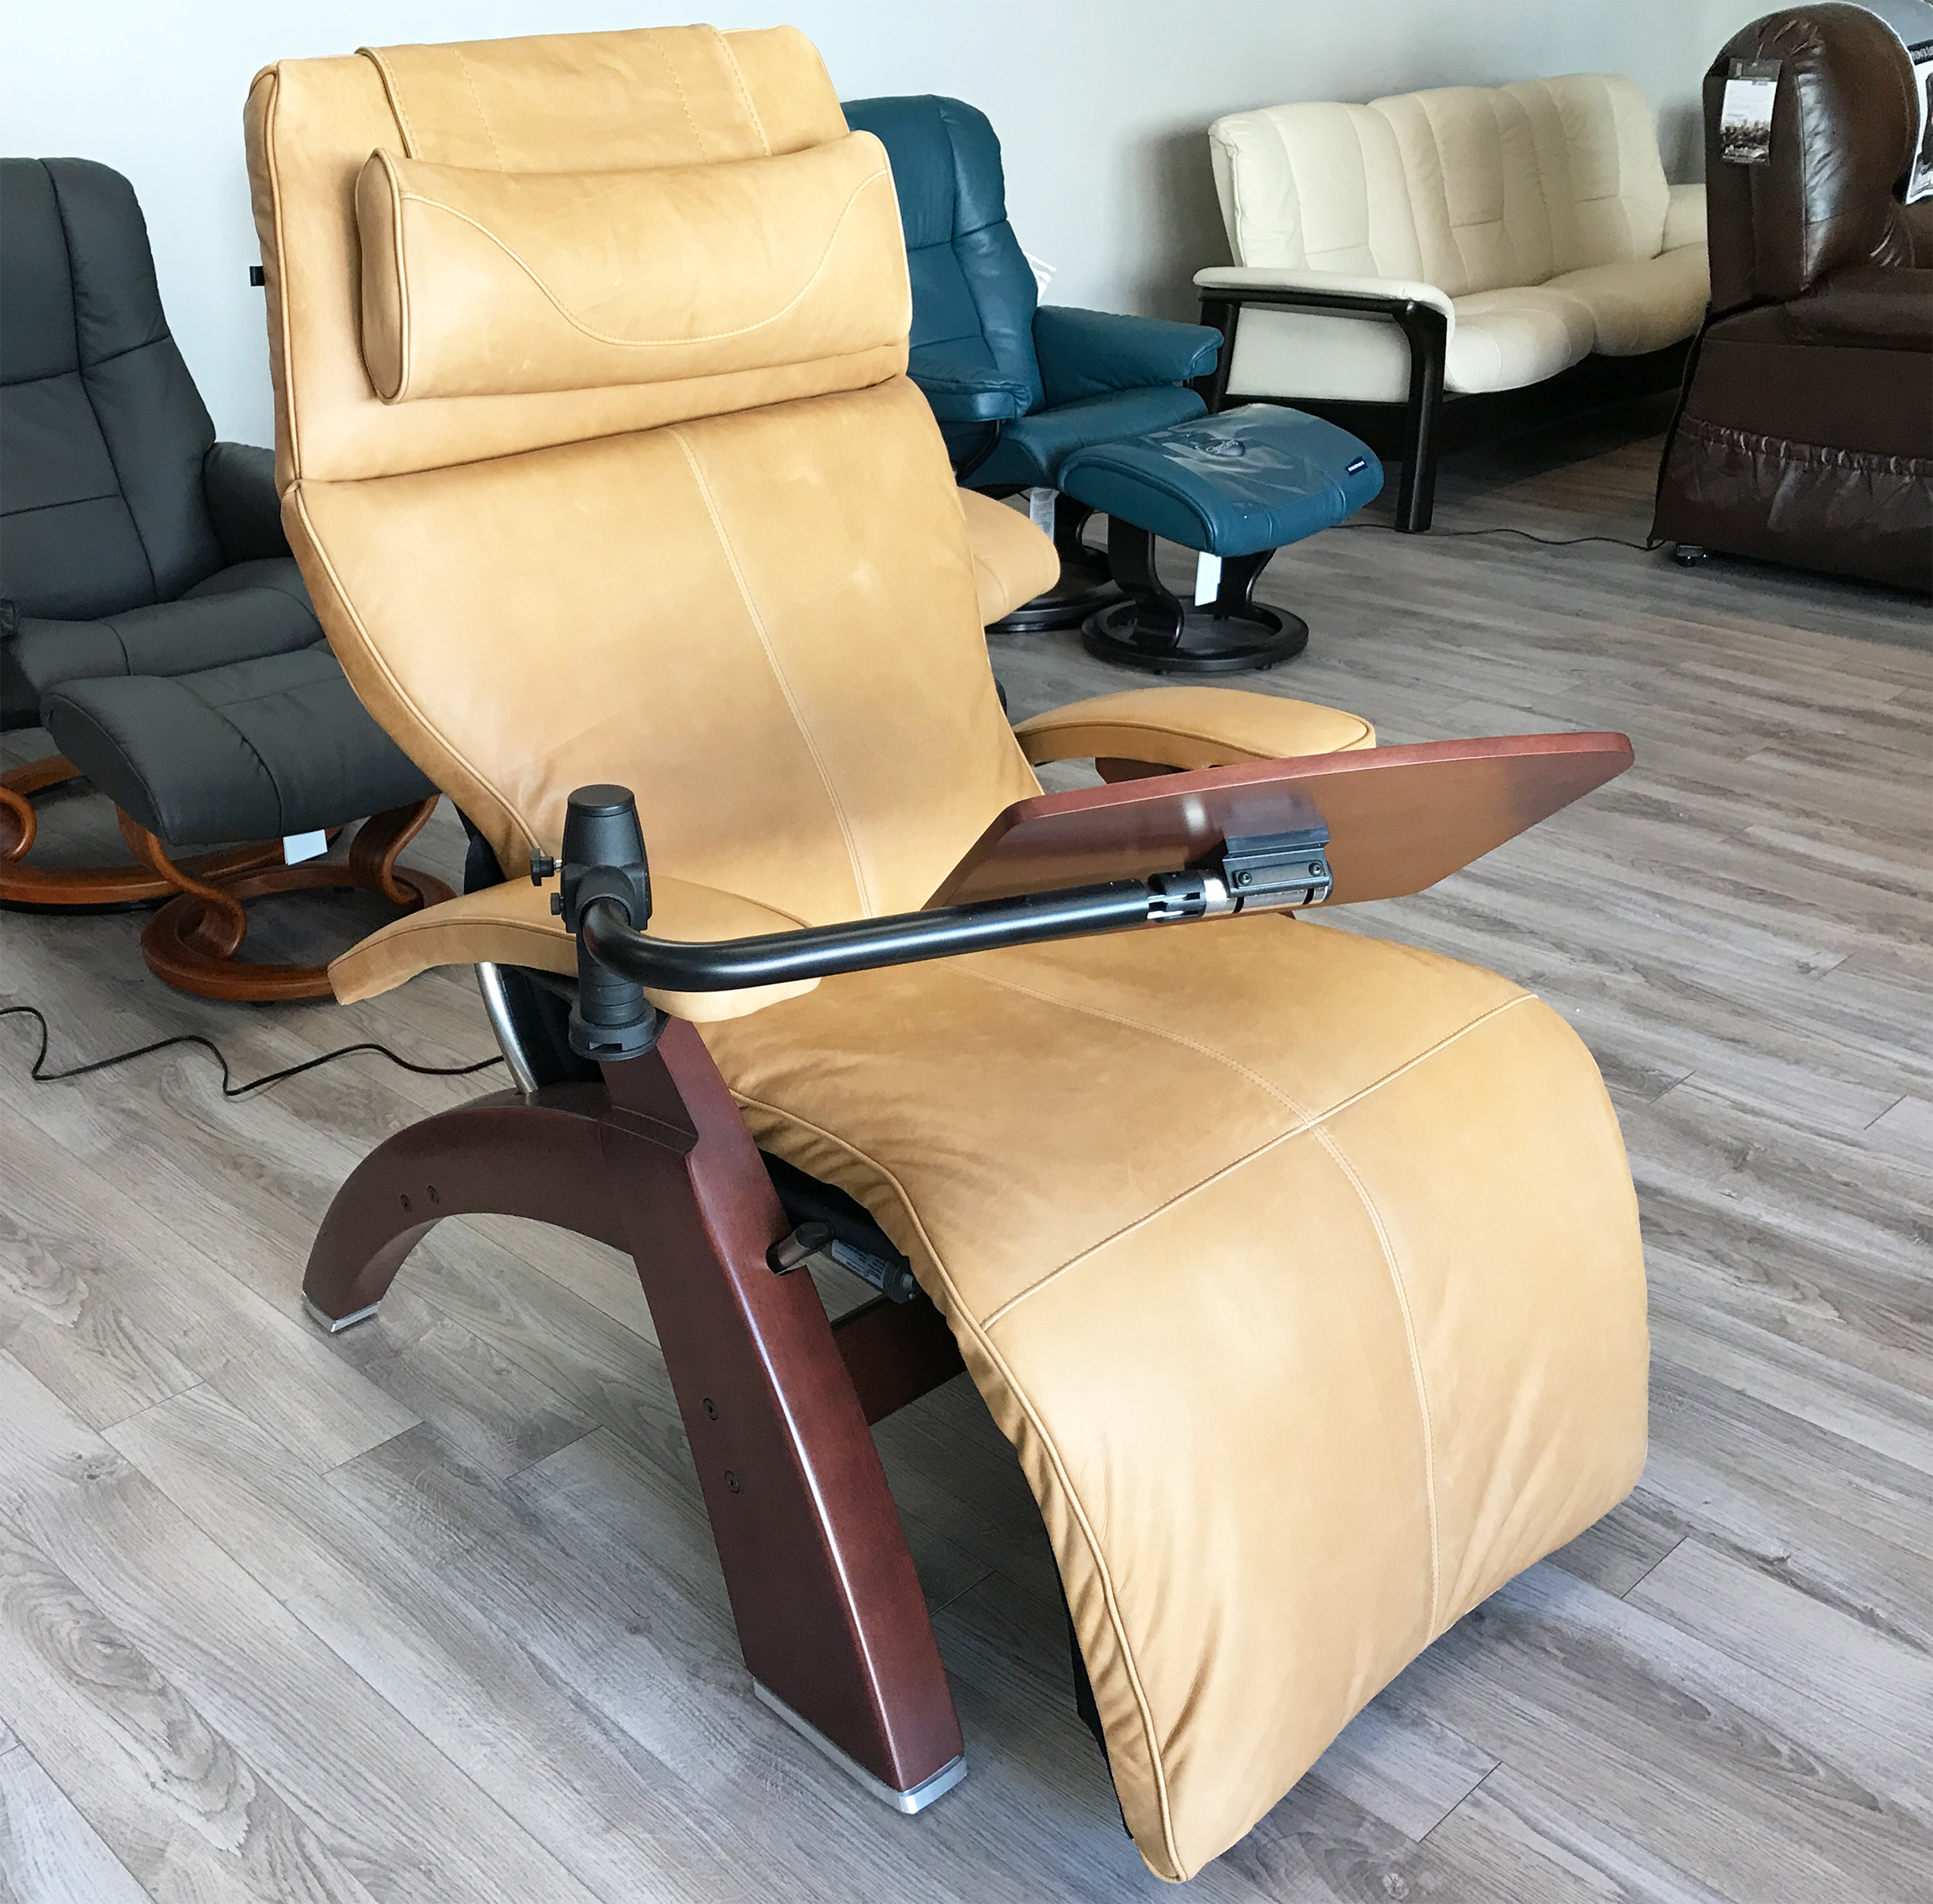 Sycamore premium leather chestnut wood base series 2 classic perfect chair zero gravity power recliner by